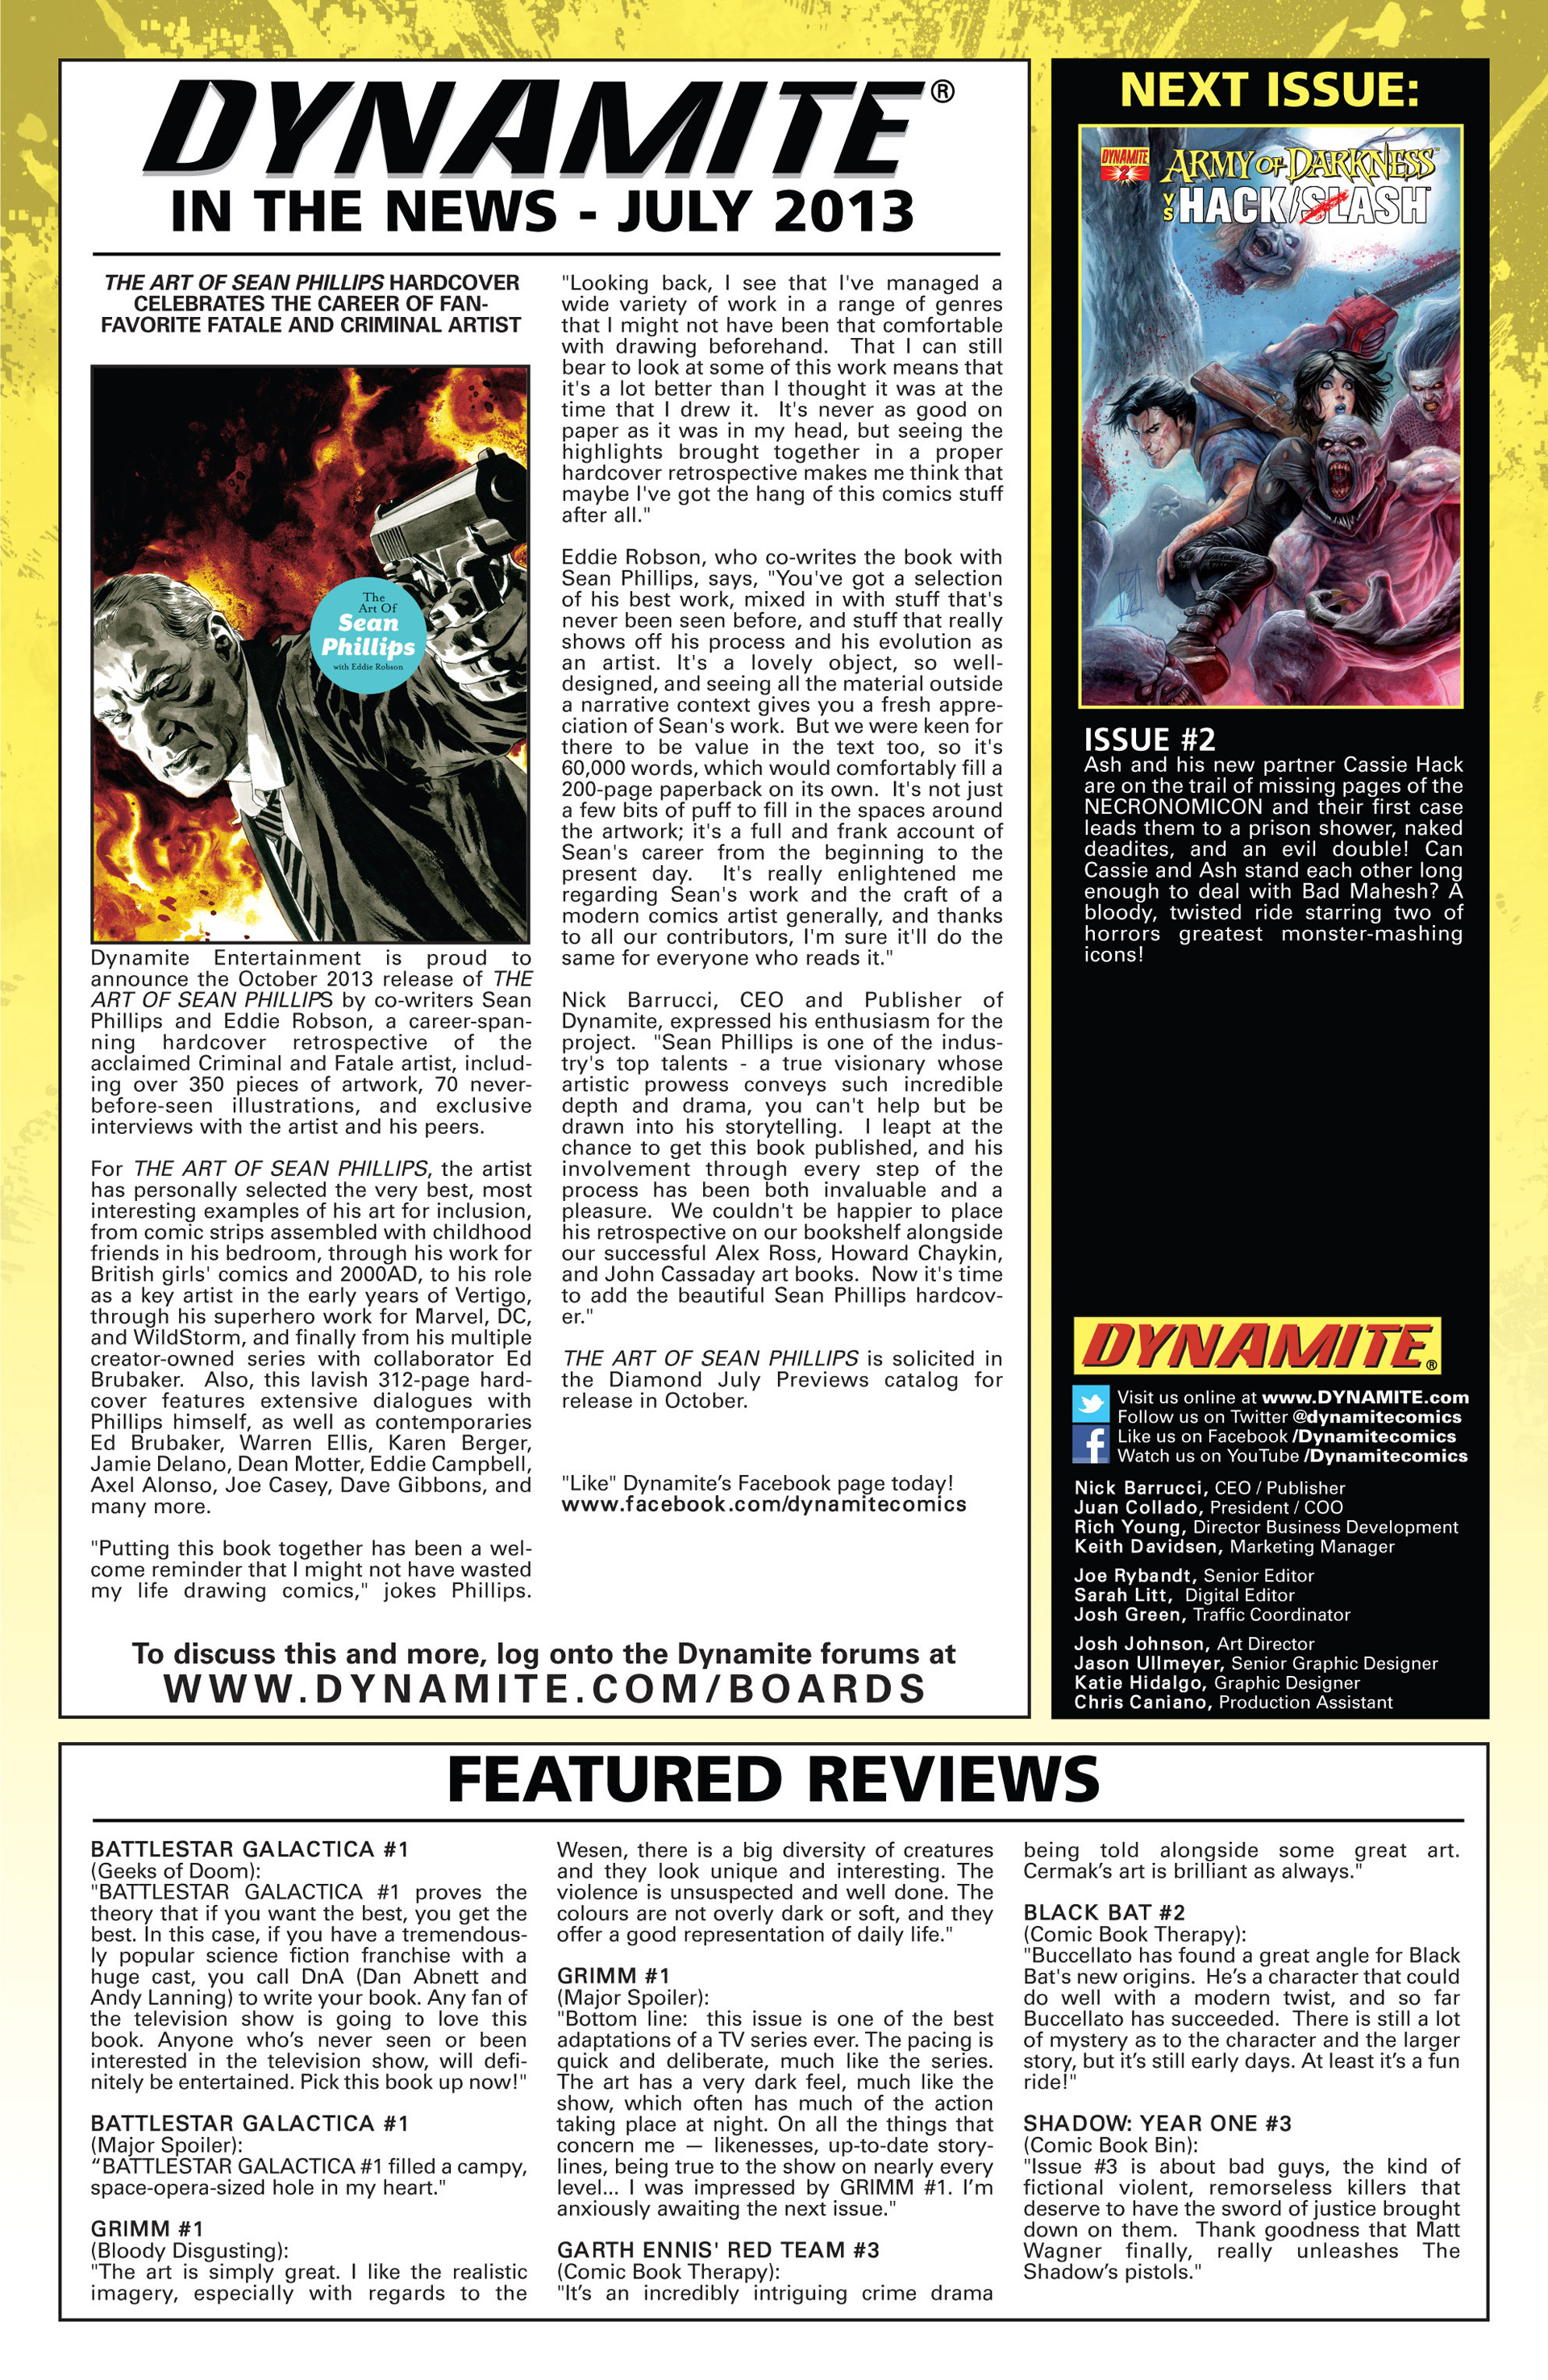 Read online Army of Darkness vs. Hack/Slash comic -  Issue #1 - 27